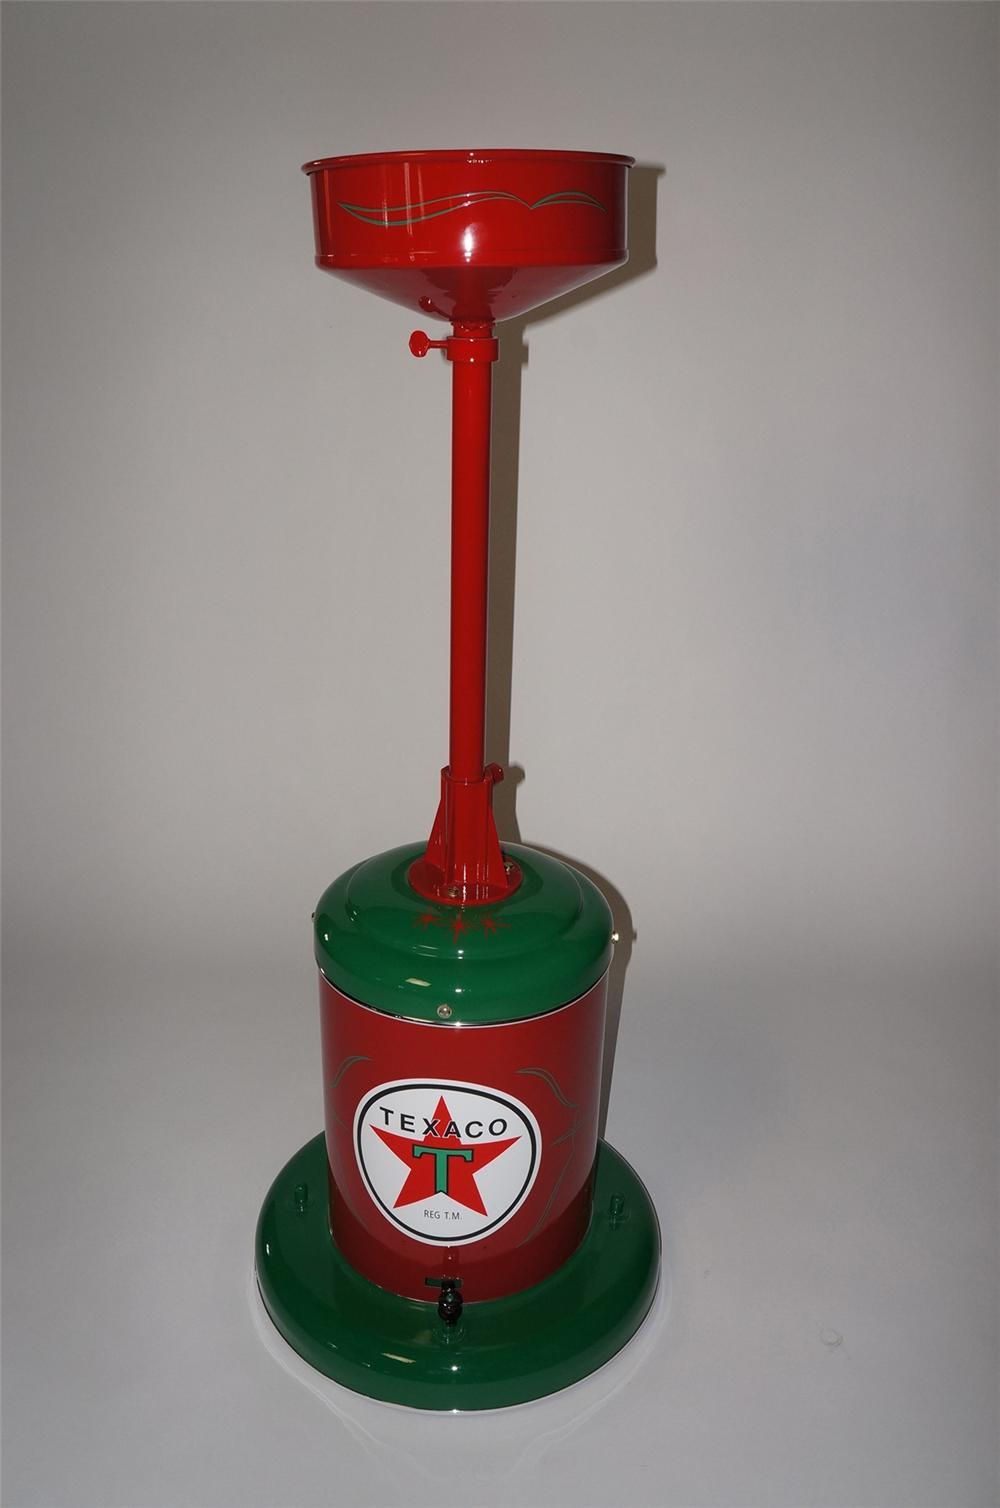 Nicely restored 1940s-50s Texaco service department oil collector on wheels. - Front 3/4 - 130710